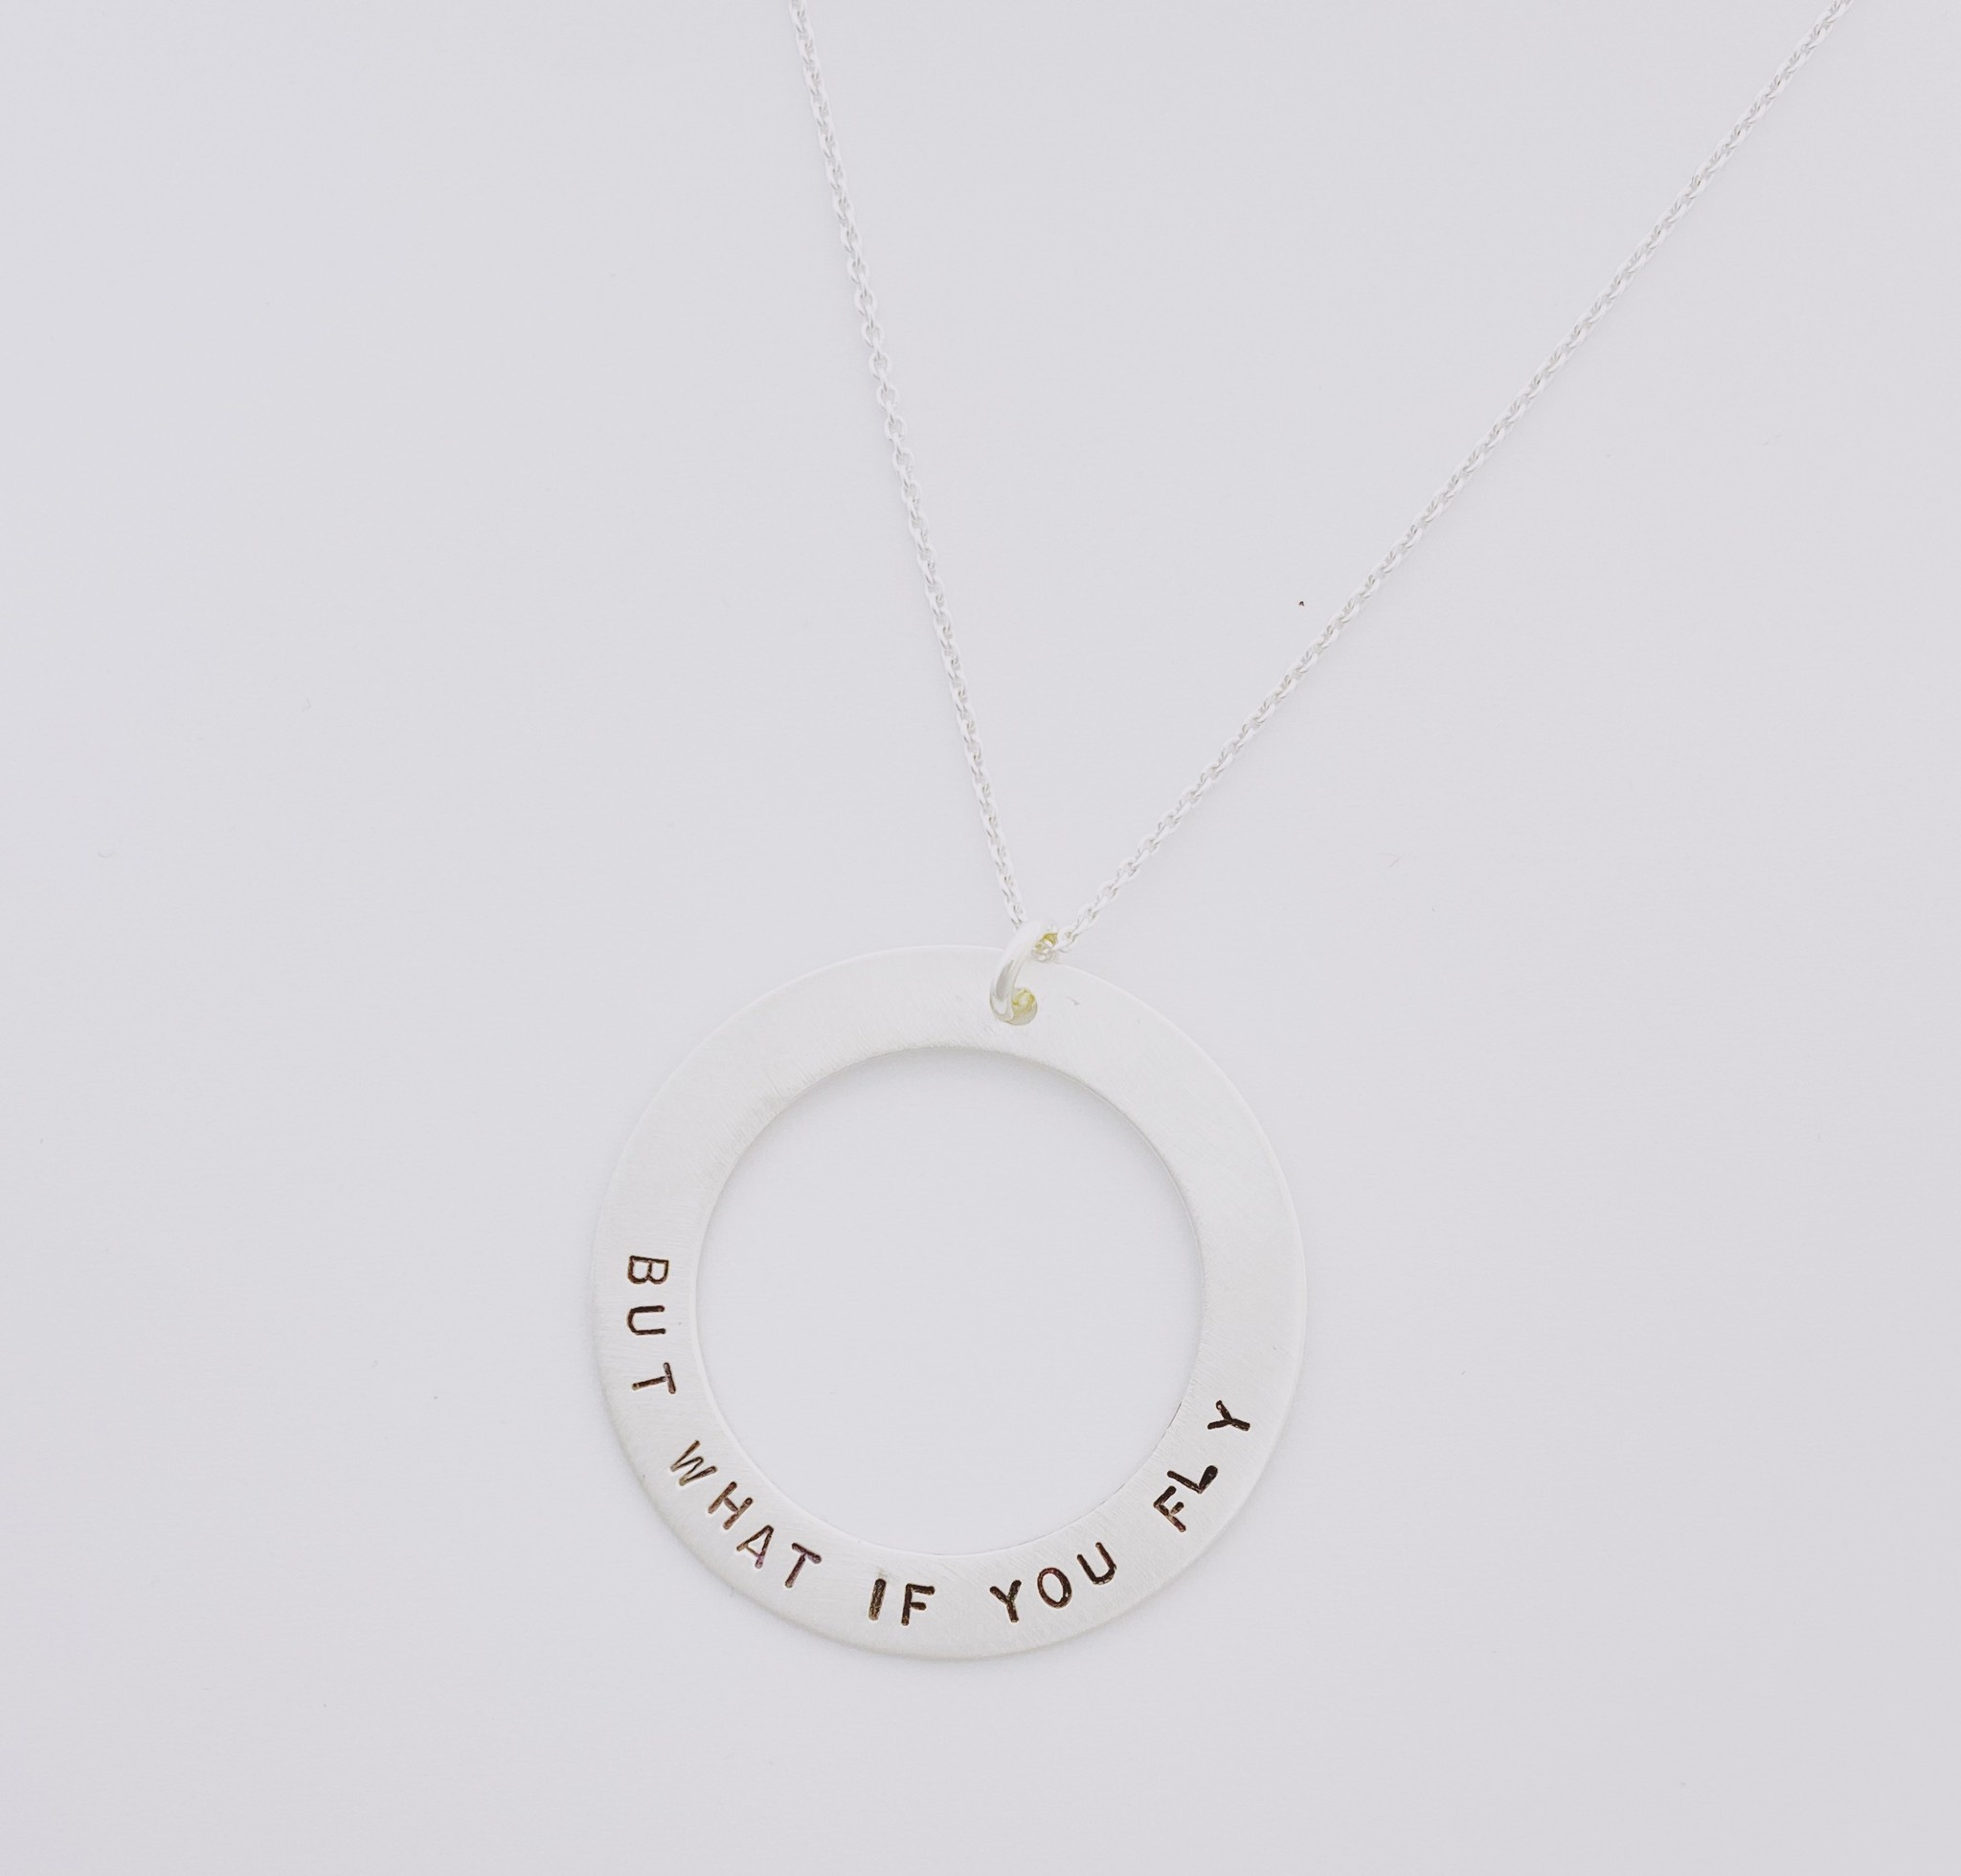 Andrea Waines Slim Halo Necklace- Fly